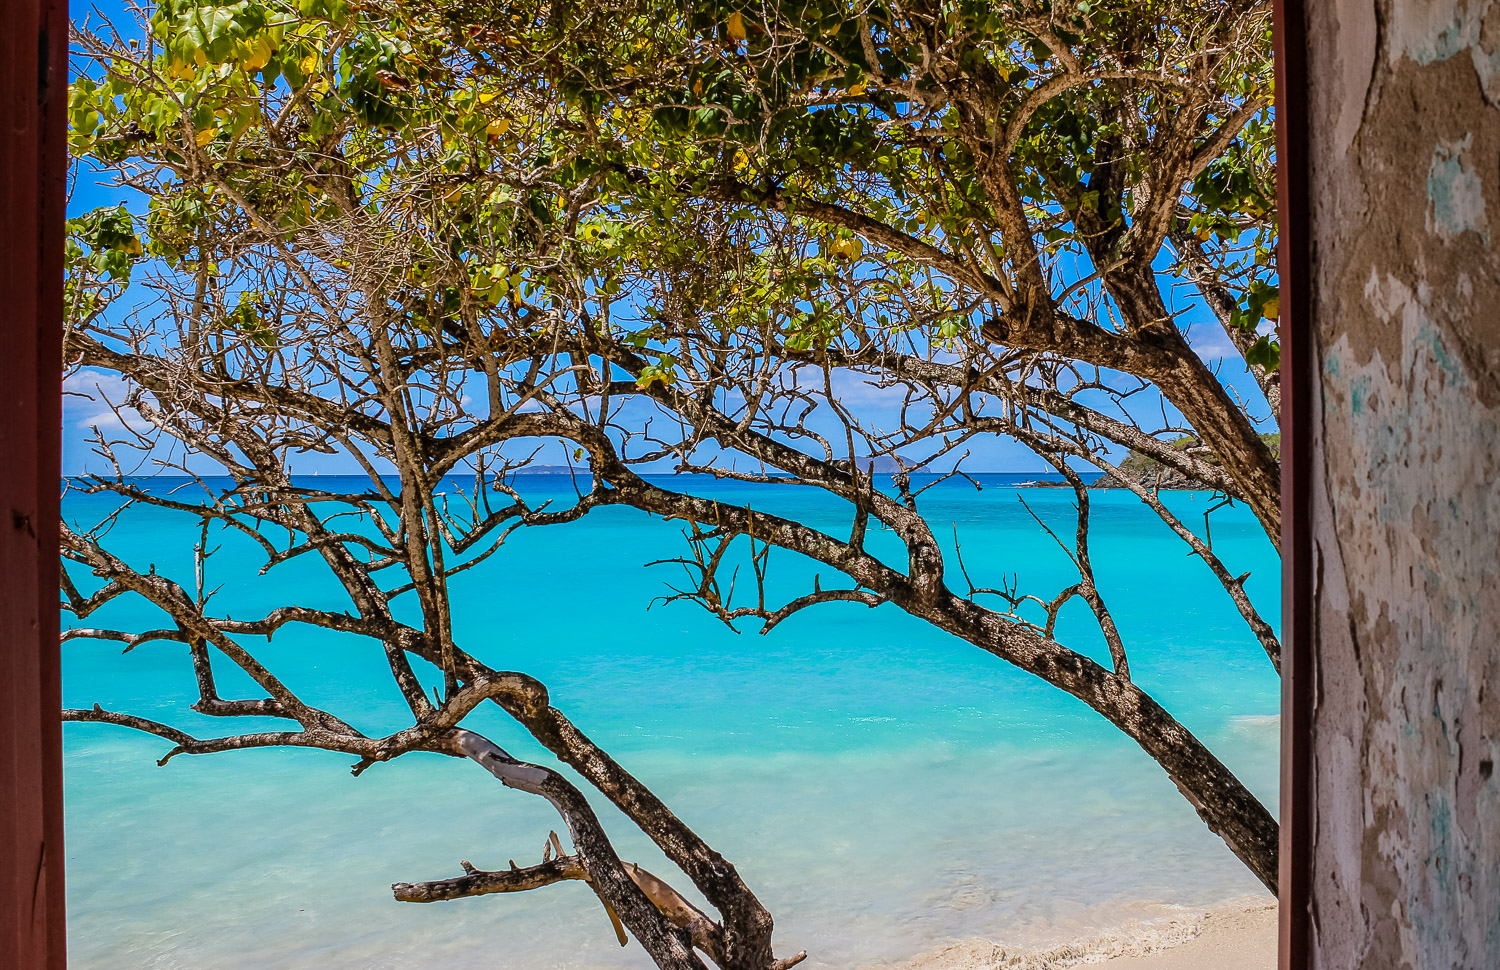 view of Cinnamon Bay from the archaeology museum - Responsible Travel in the Virgin Islands